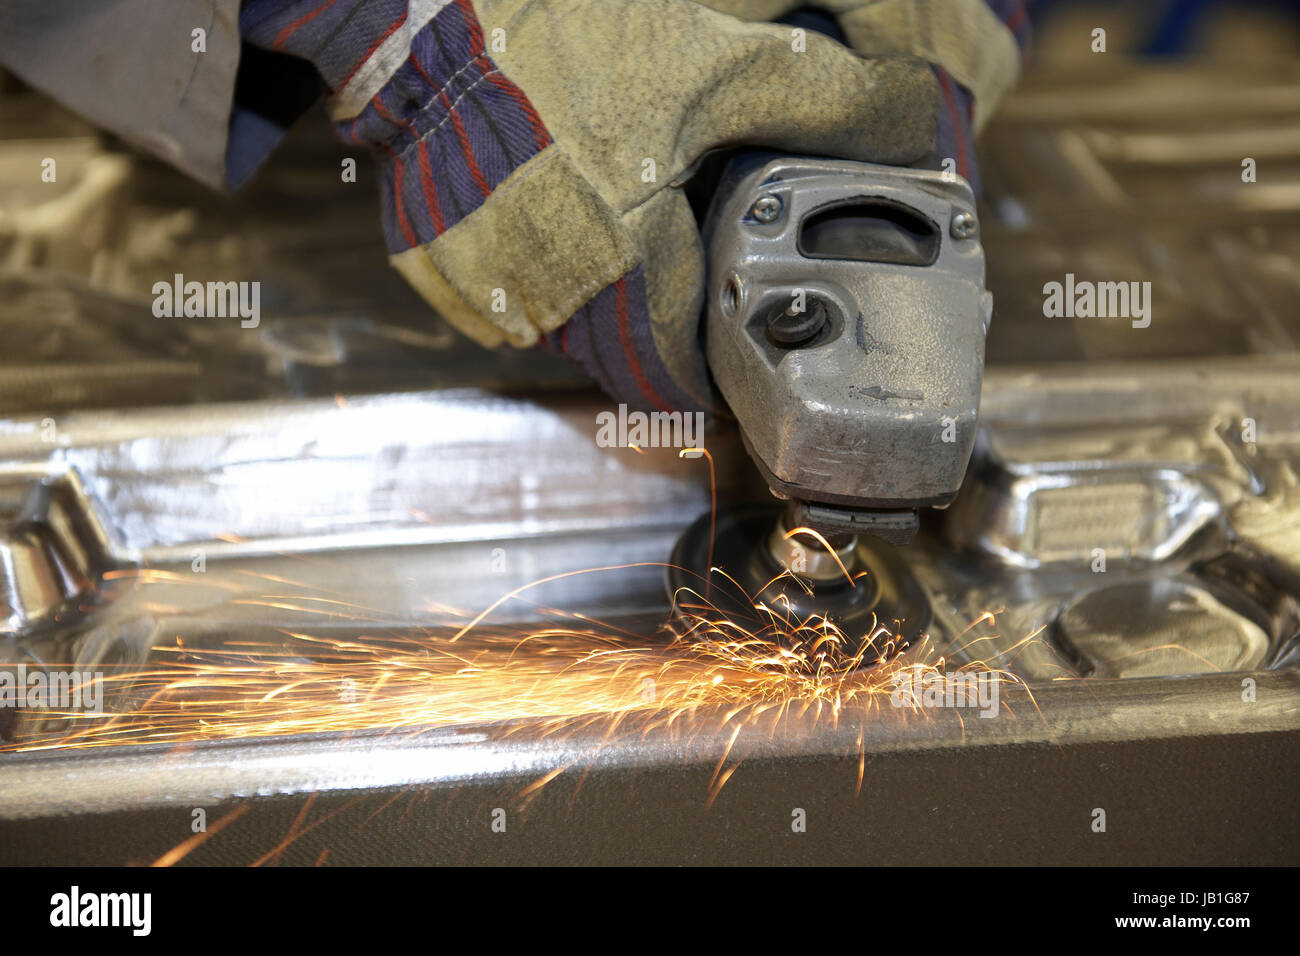 man using a angle grinder on metal surface with sparks Stock Photo